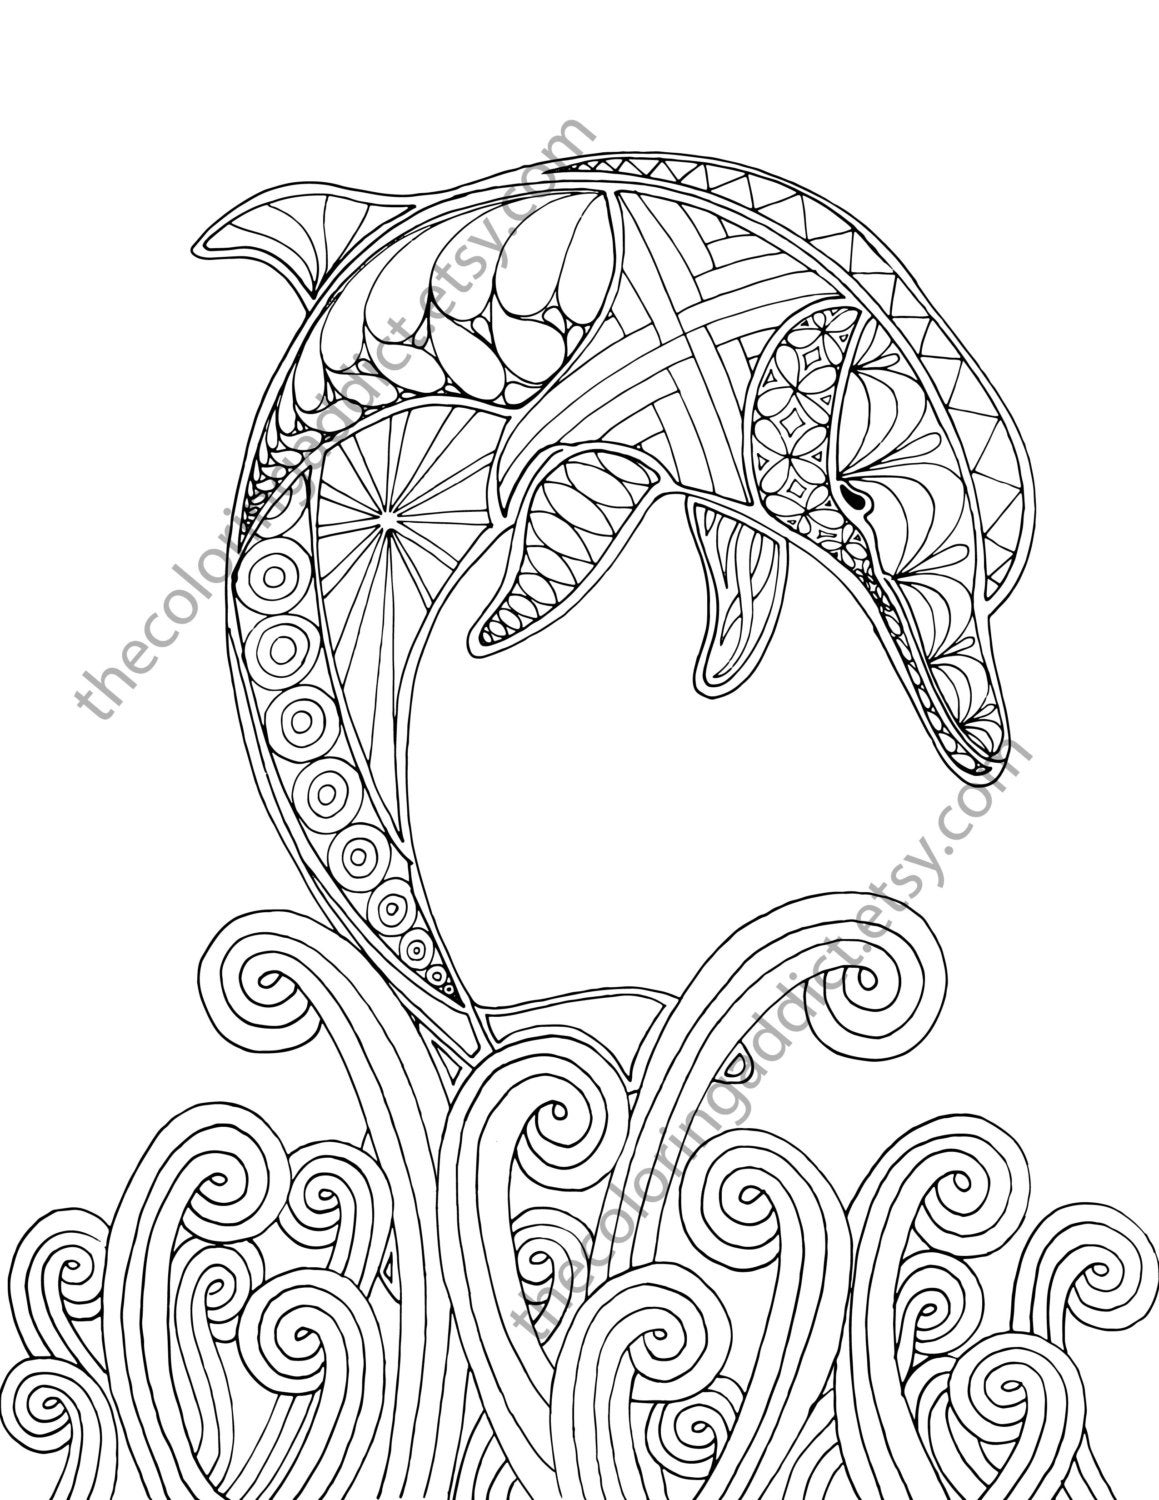 coloring pages of adults colorful turkey adult coloring page favecraftscom coloring pages adults of